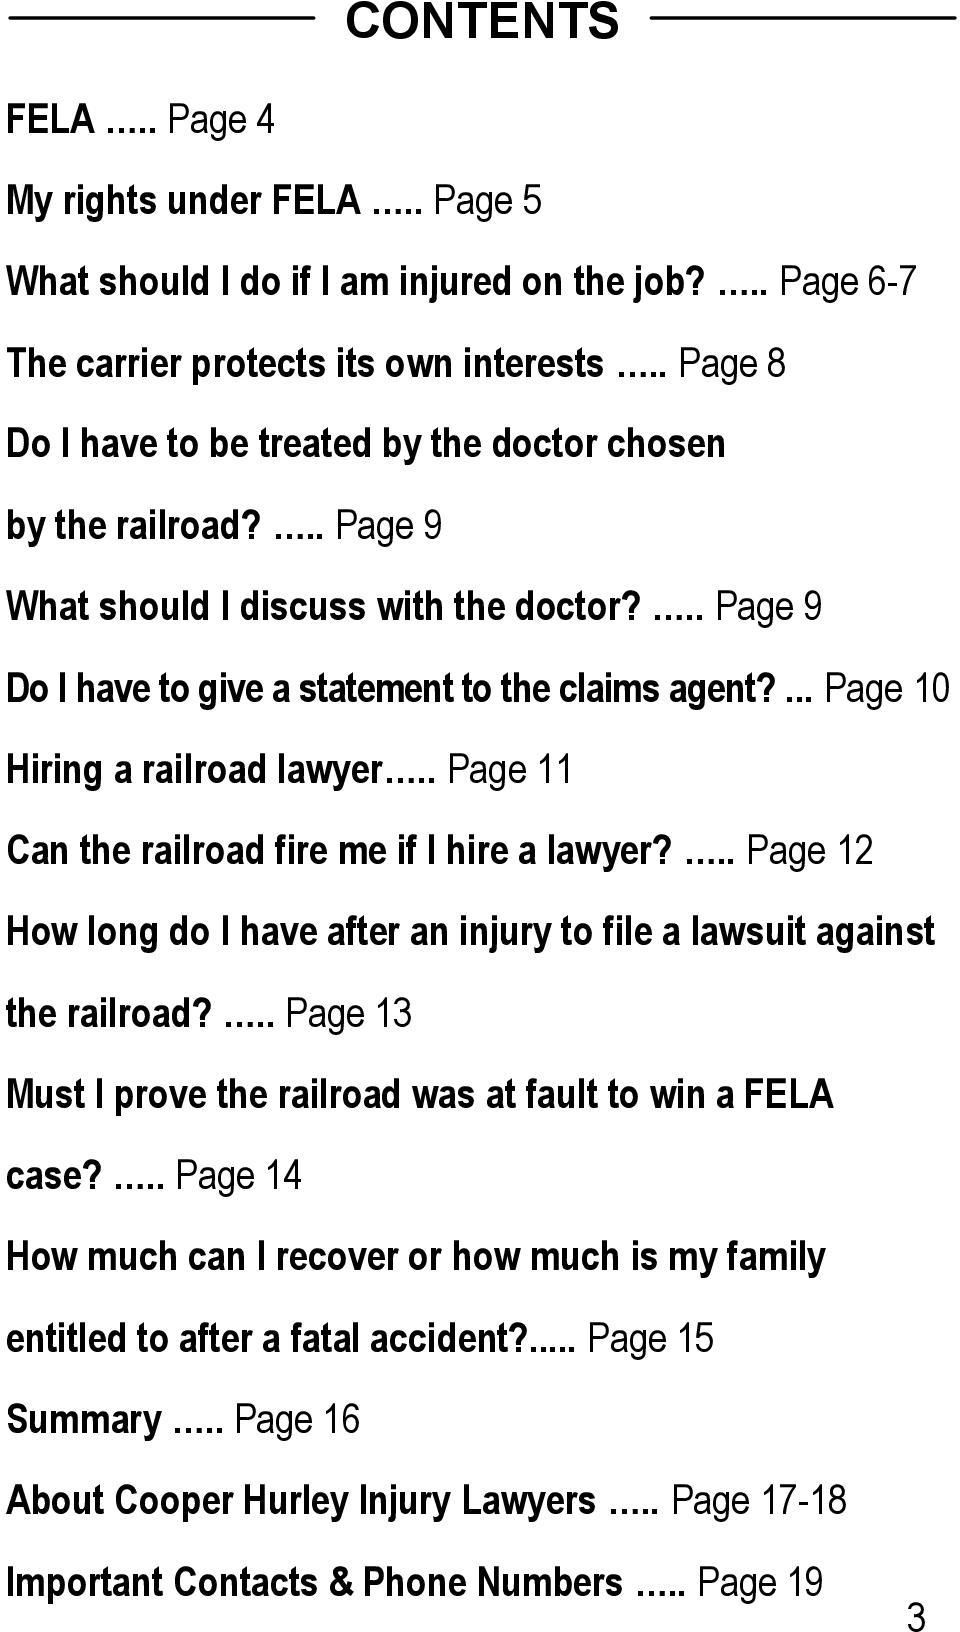 ... Page 10 Hiring a railroad lawyer.. Page 11 Can the railroad fire me if I hire a lawyer?.. Page 12 How long do I have after an injury to file a lawsuit against the railroad?